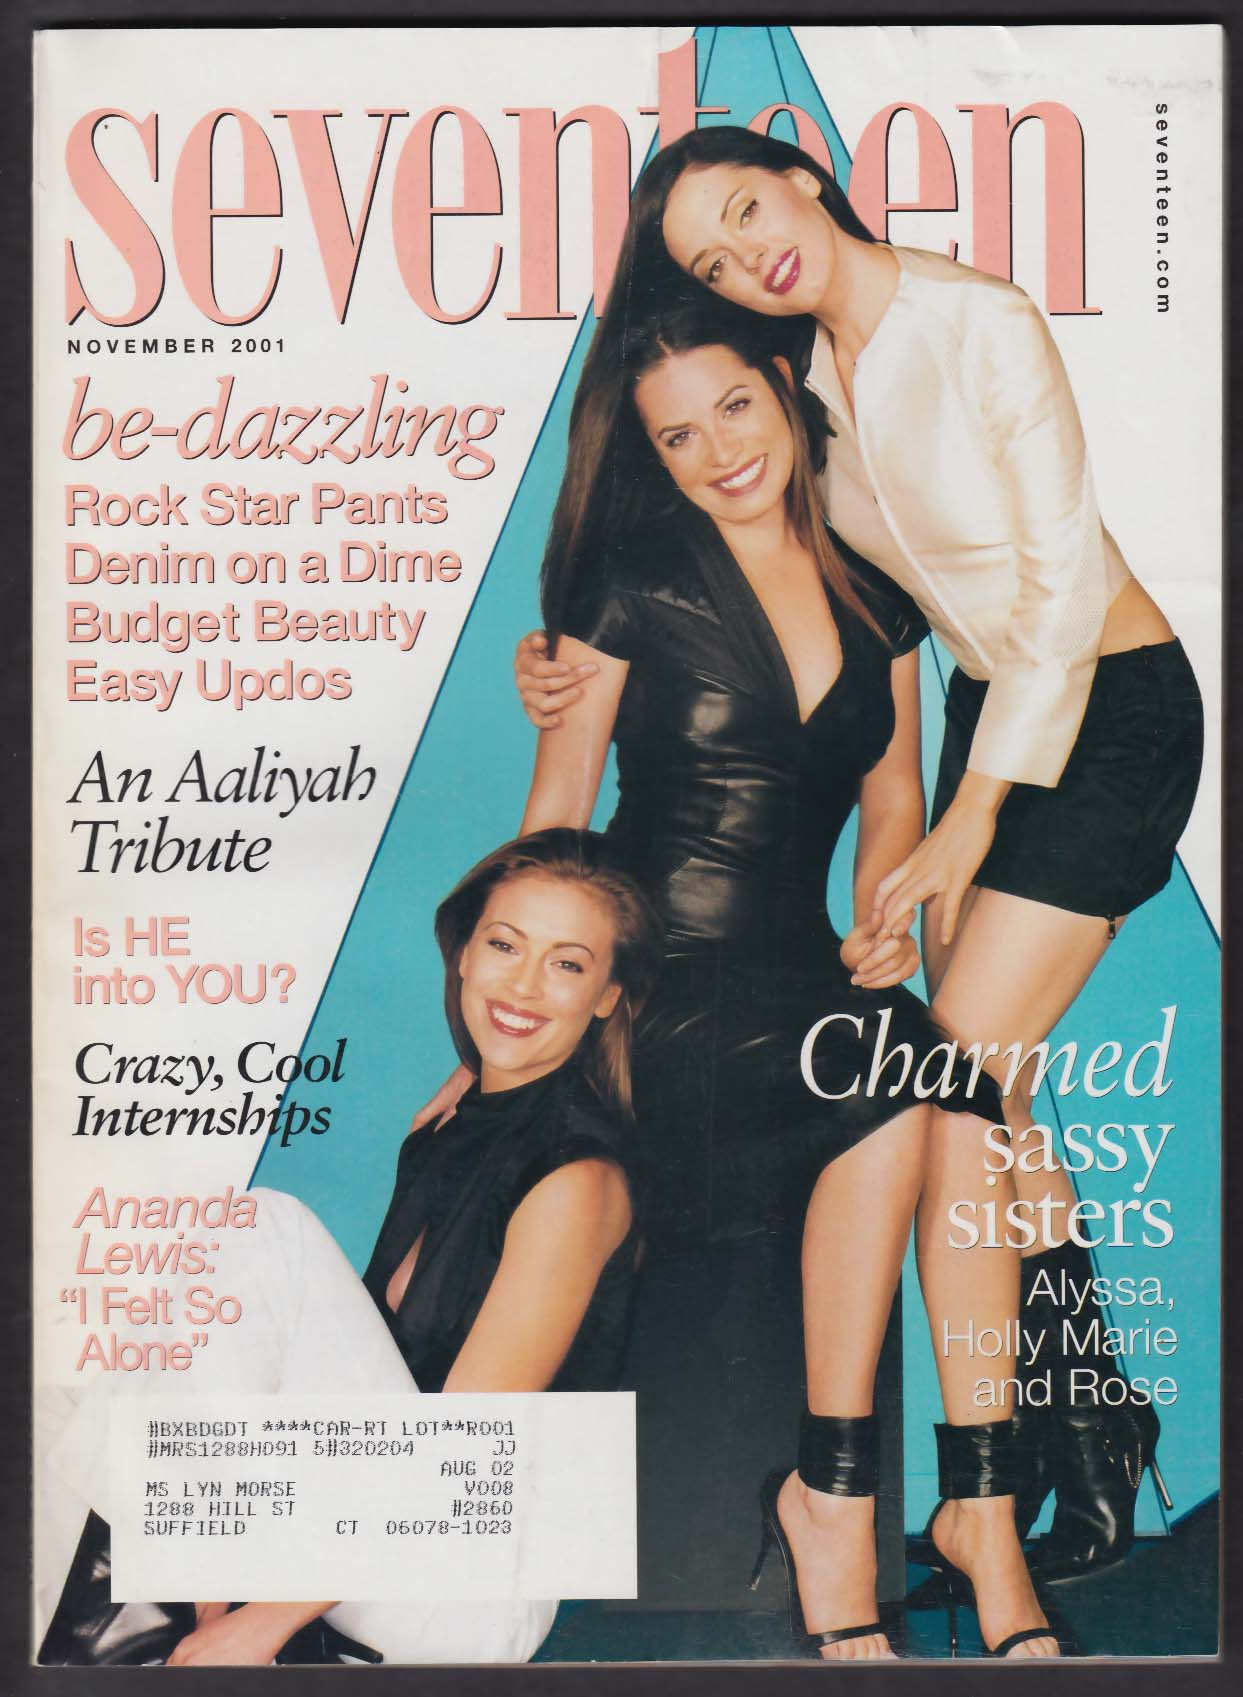 SEVENTEEN Alyssa Milano Holly Marie Combs Rose McGowan Aaliyah 11 2001